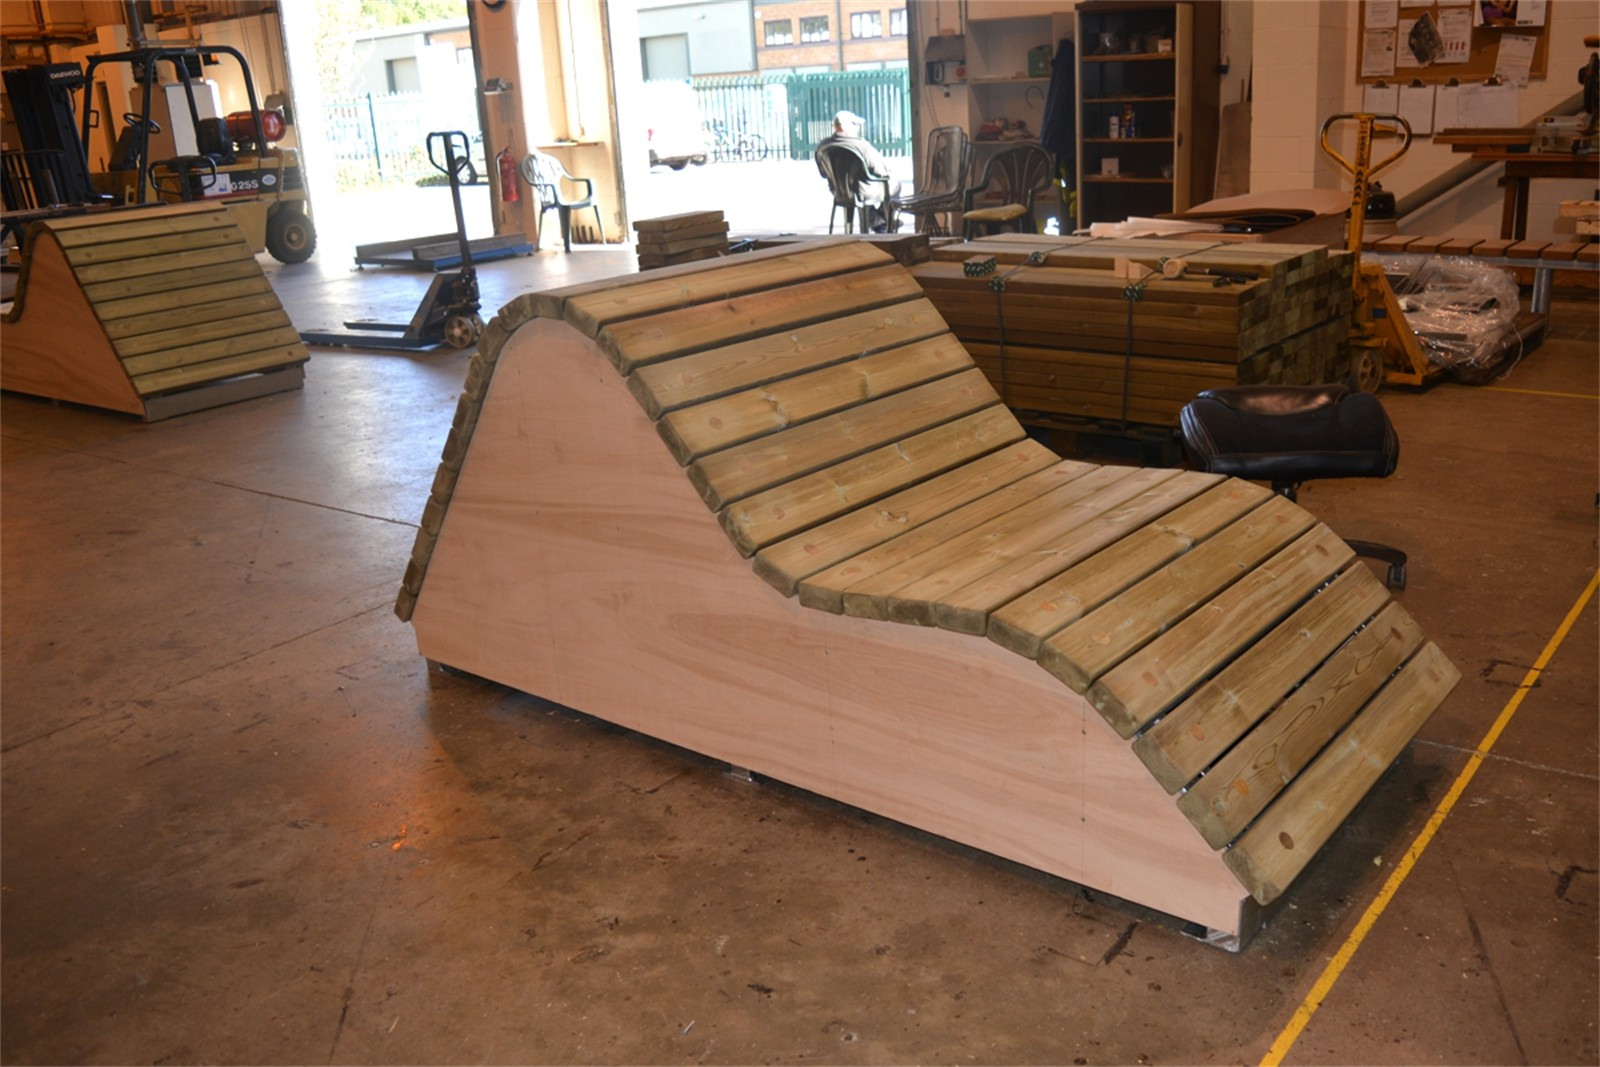 c121t06 - Slatted timber loungers in manufacture